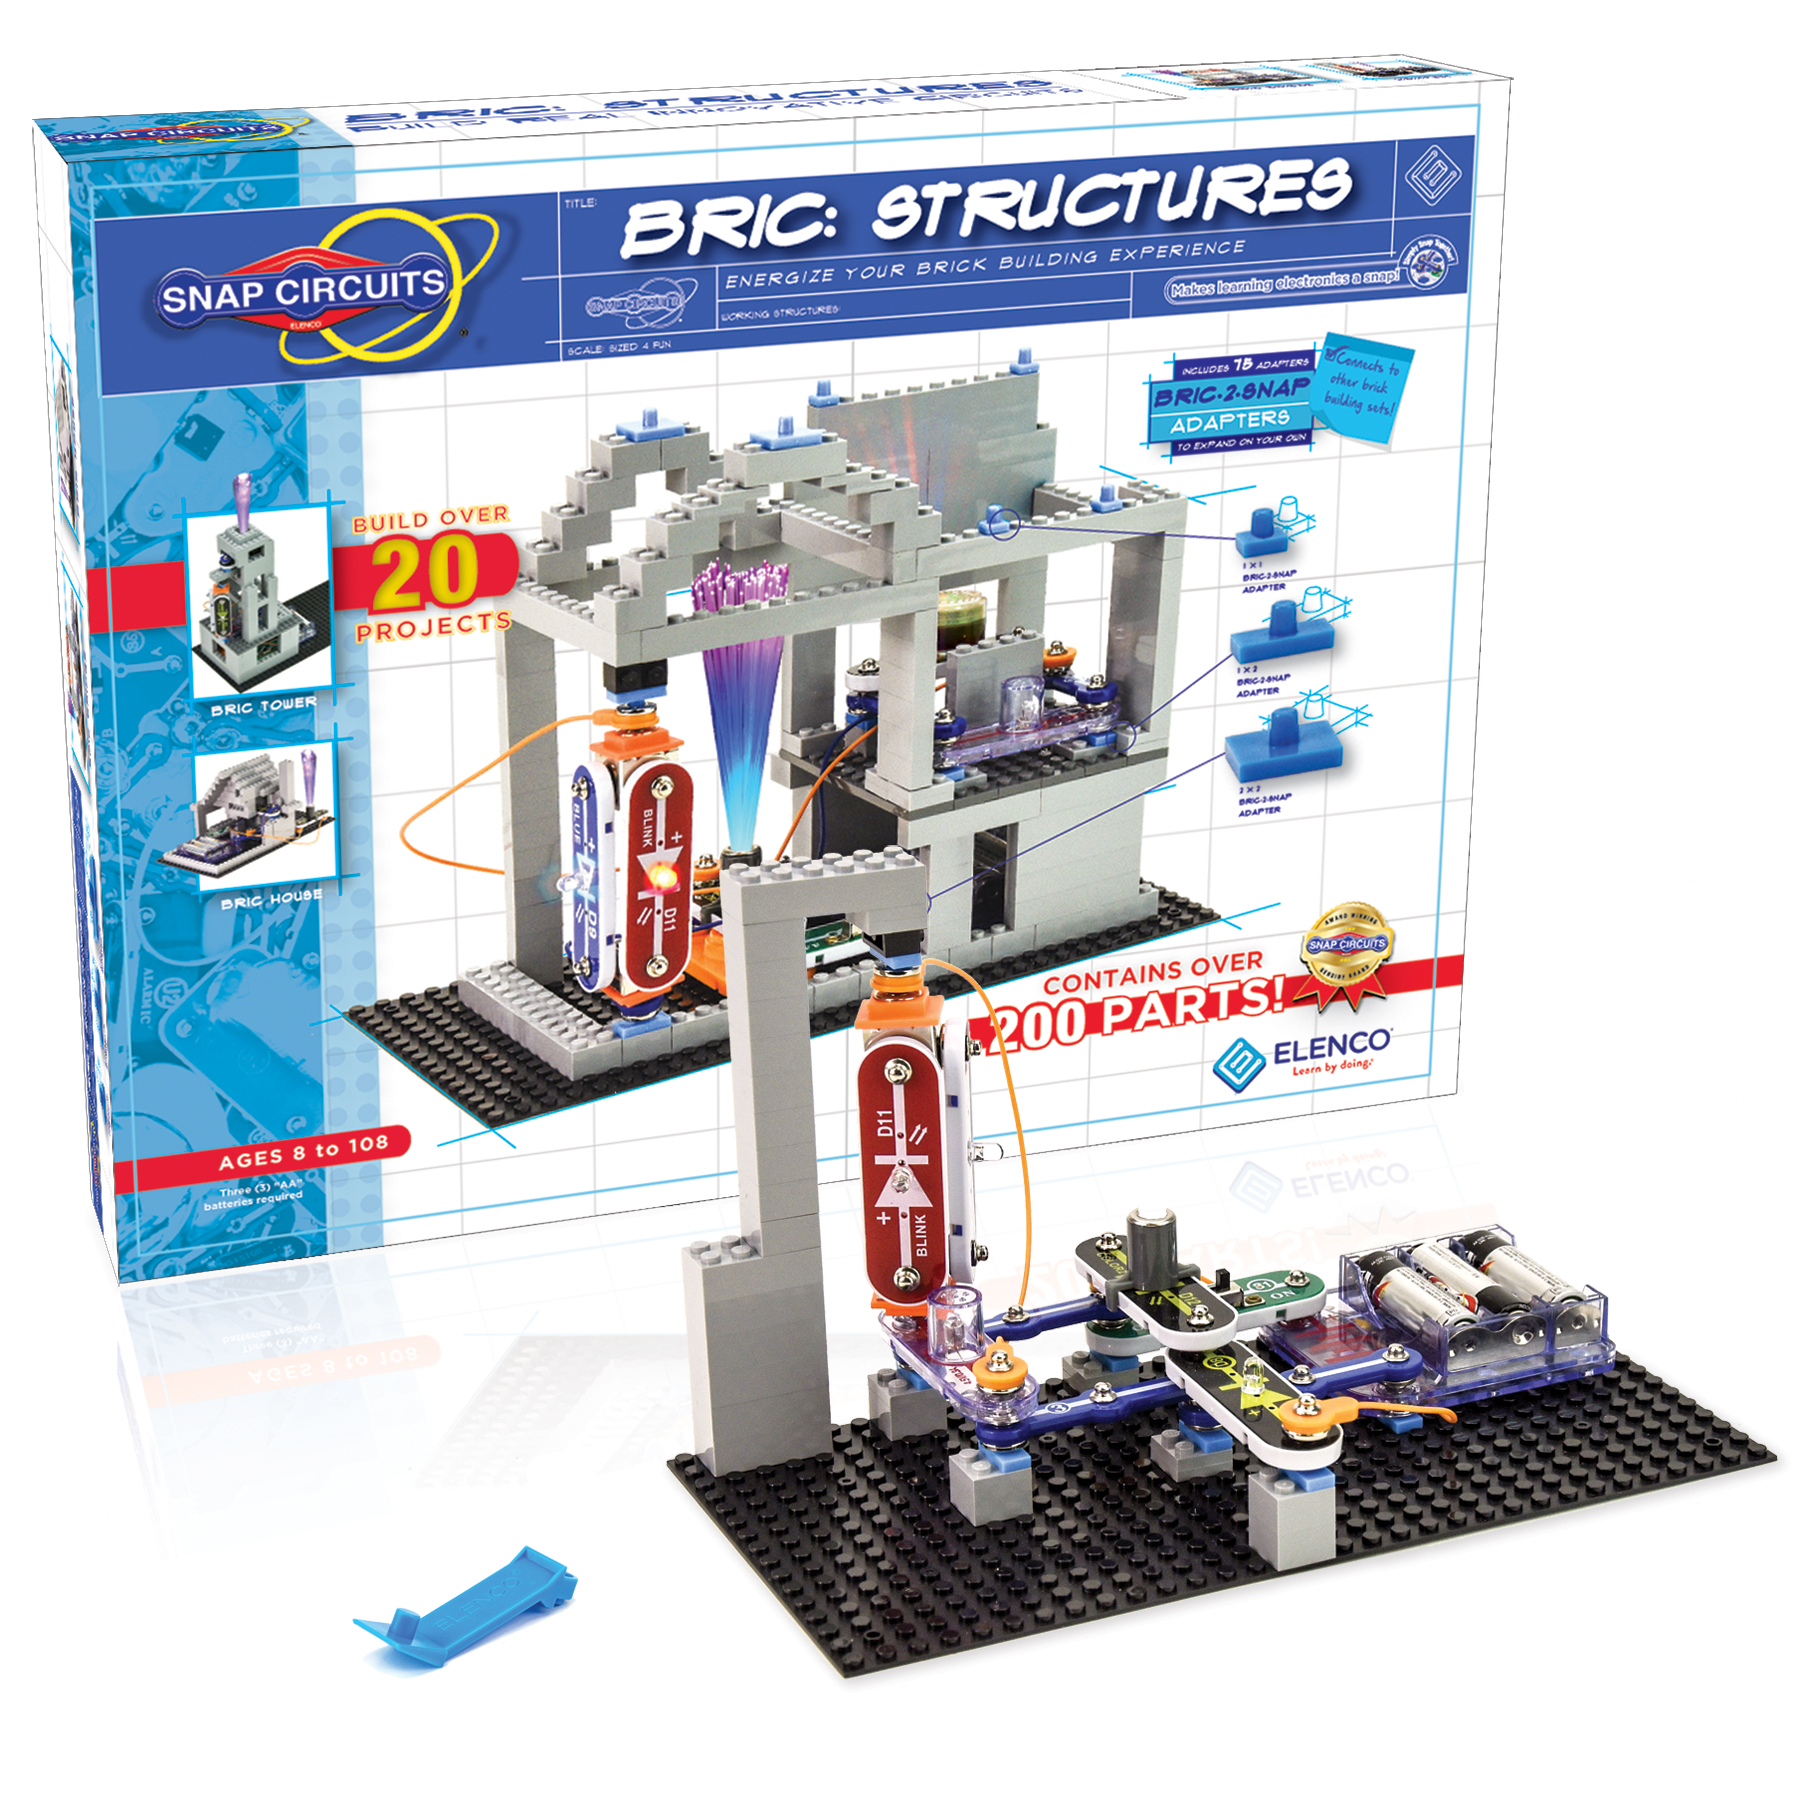 Educational Stem Toys Snap Circuits Elenco Electronics What Are You Building This Weekend Build Electronic Meet Bric